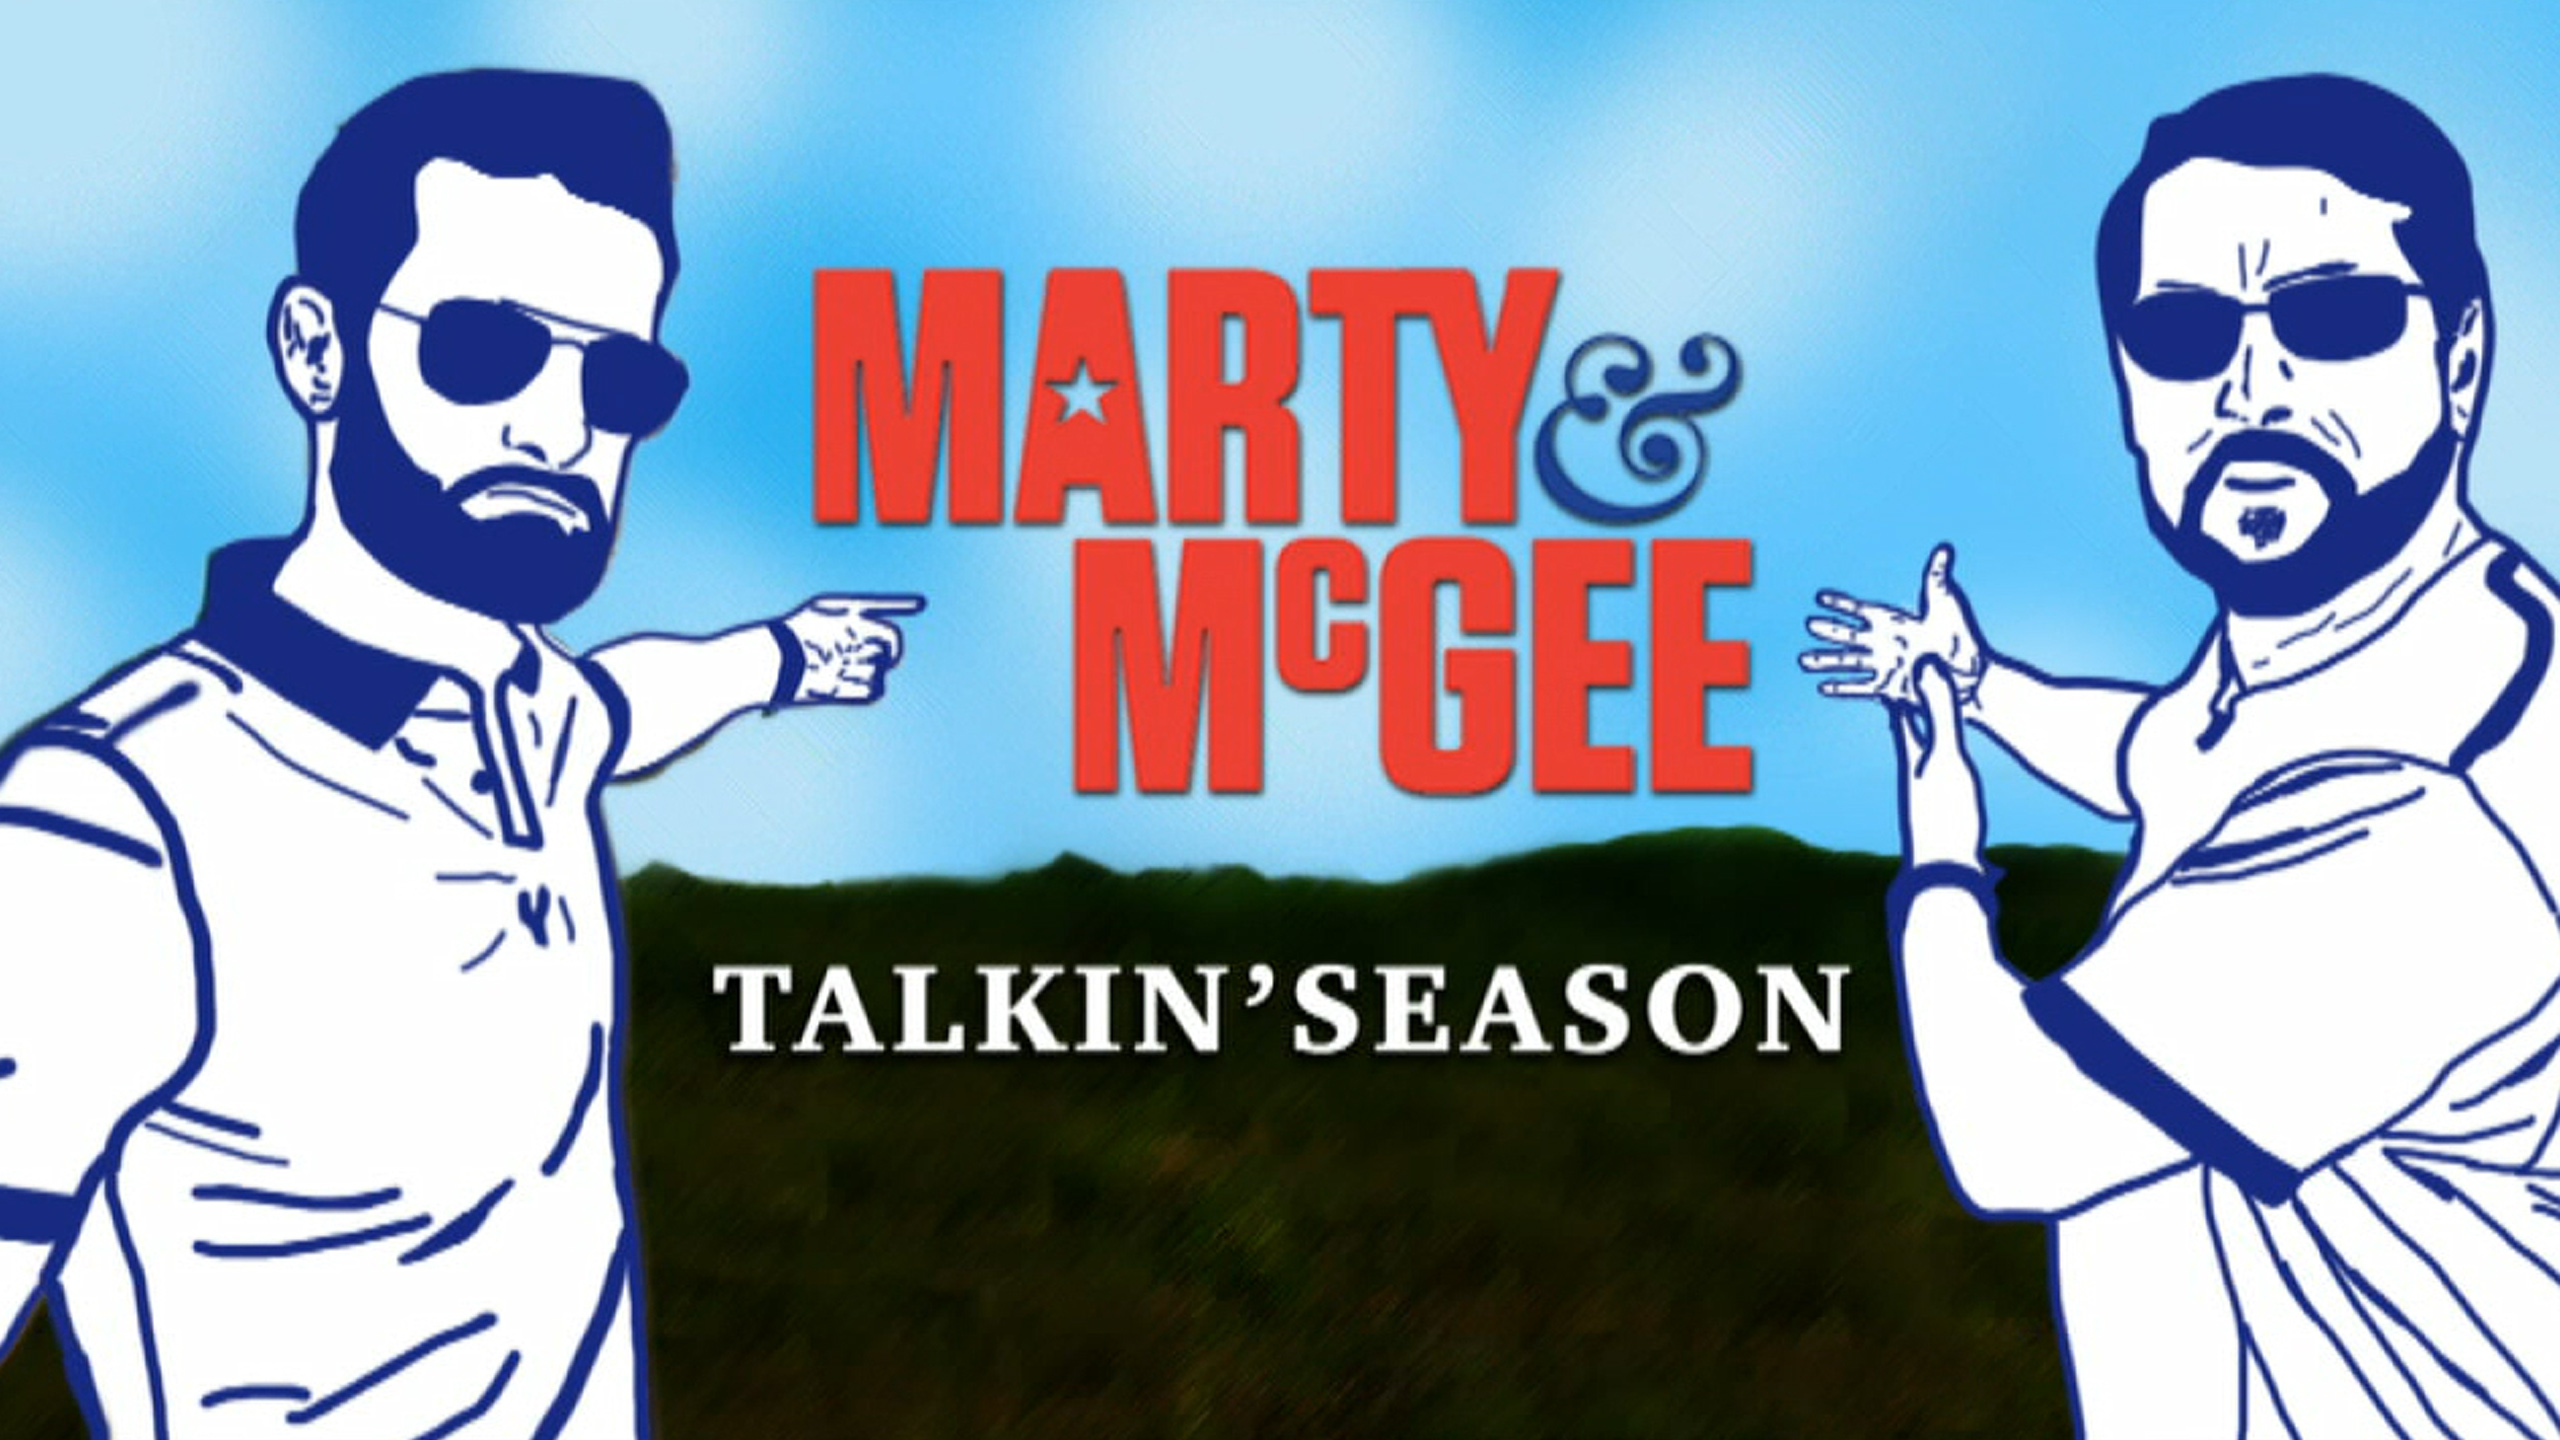 Marty & McGee: Talkin' Season – SEC East Coaches